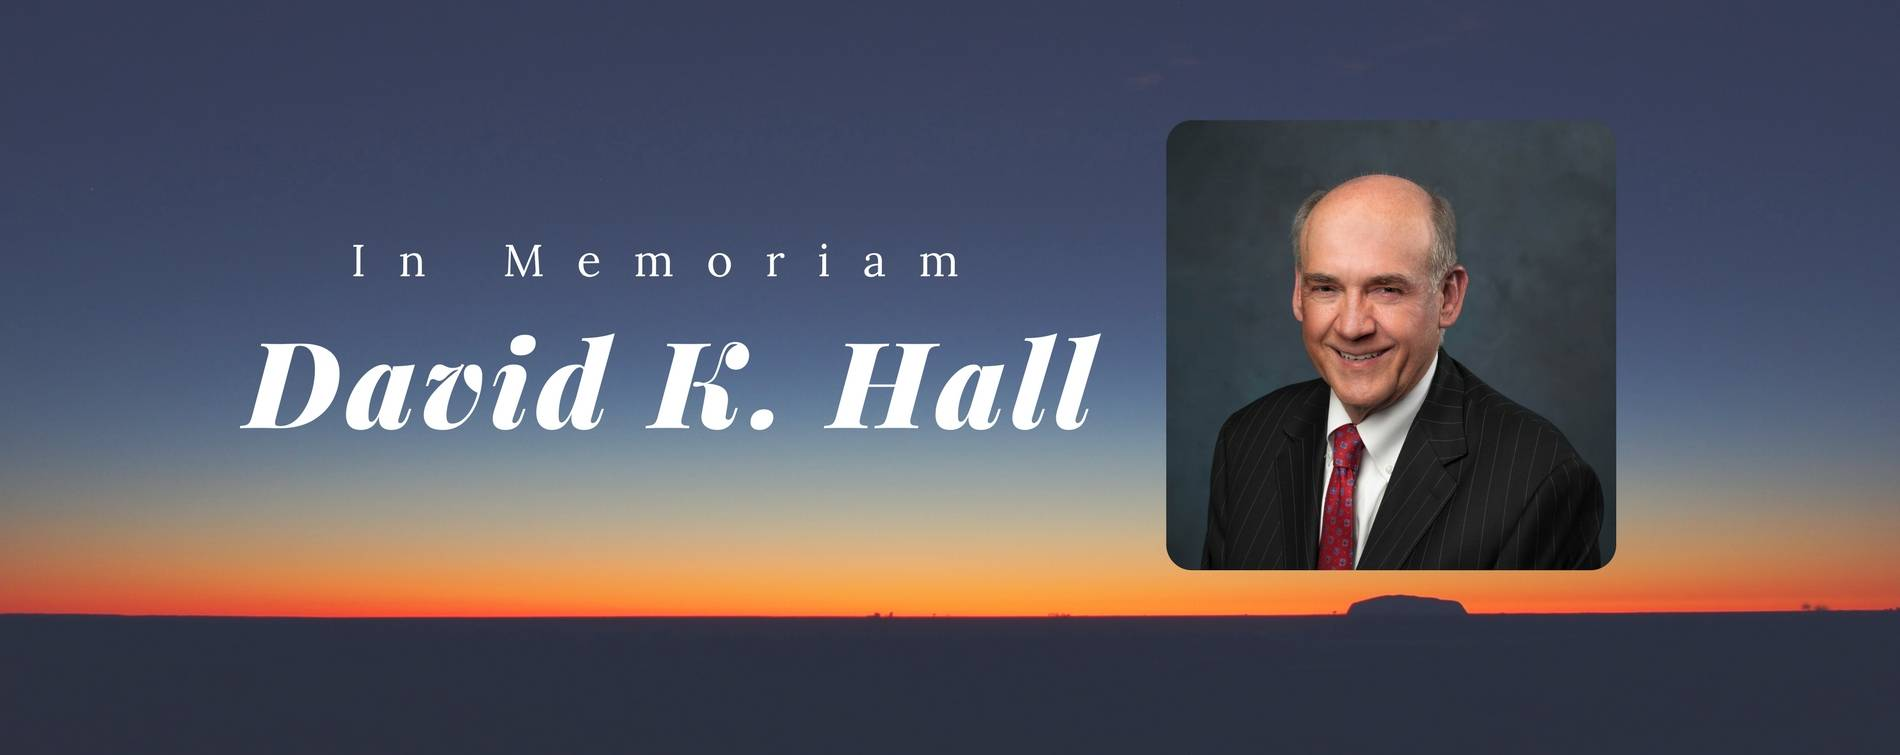 A sunset with an image of Trustee David Hall